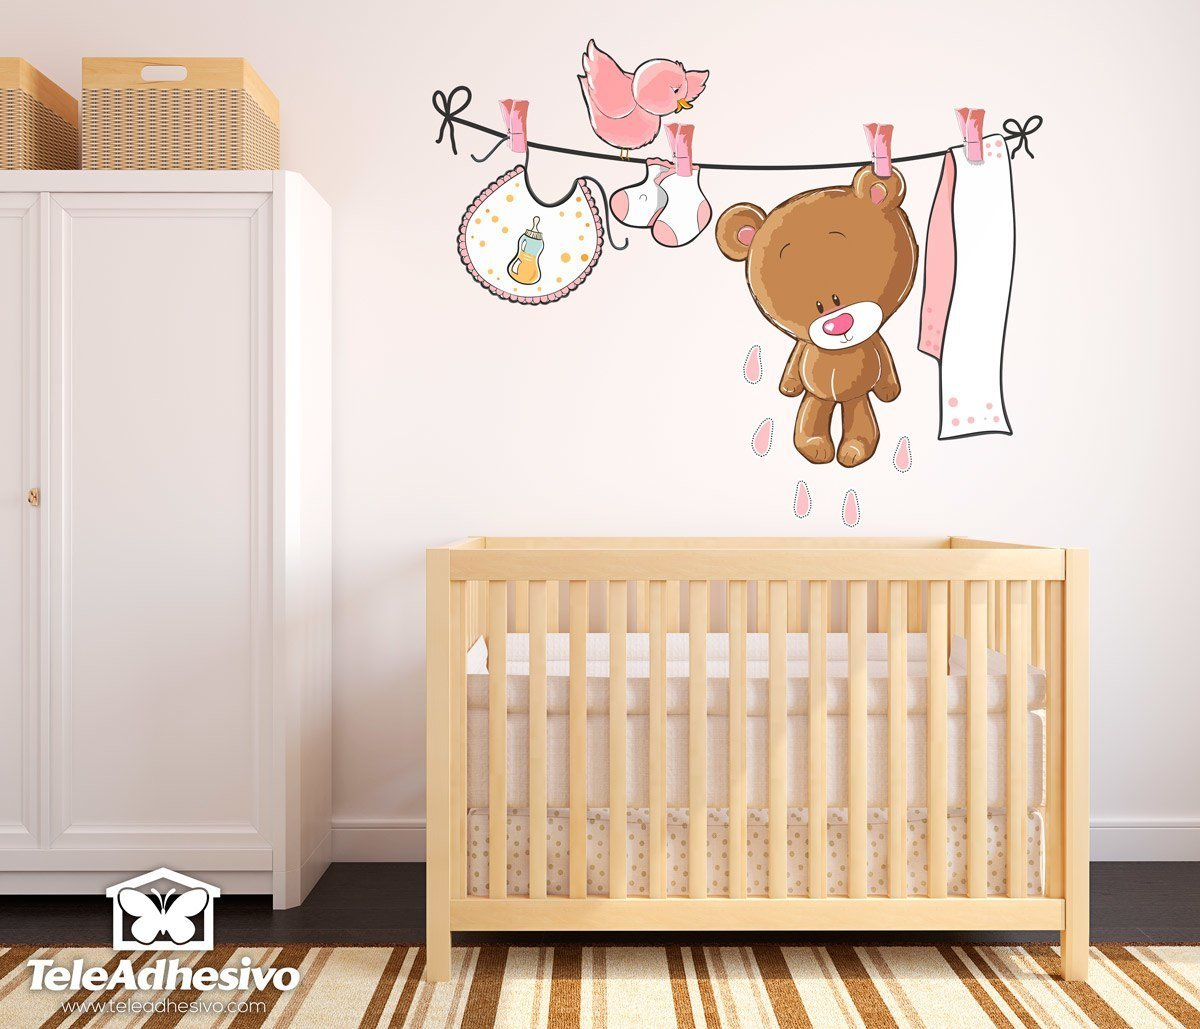 Stickers for Kids: Bear on the pink clothesline